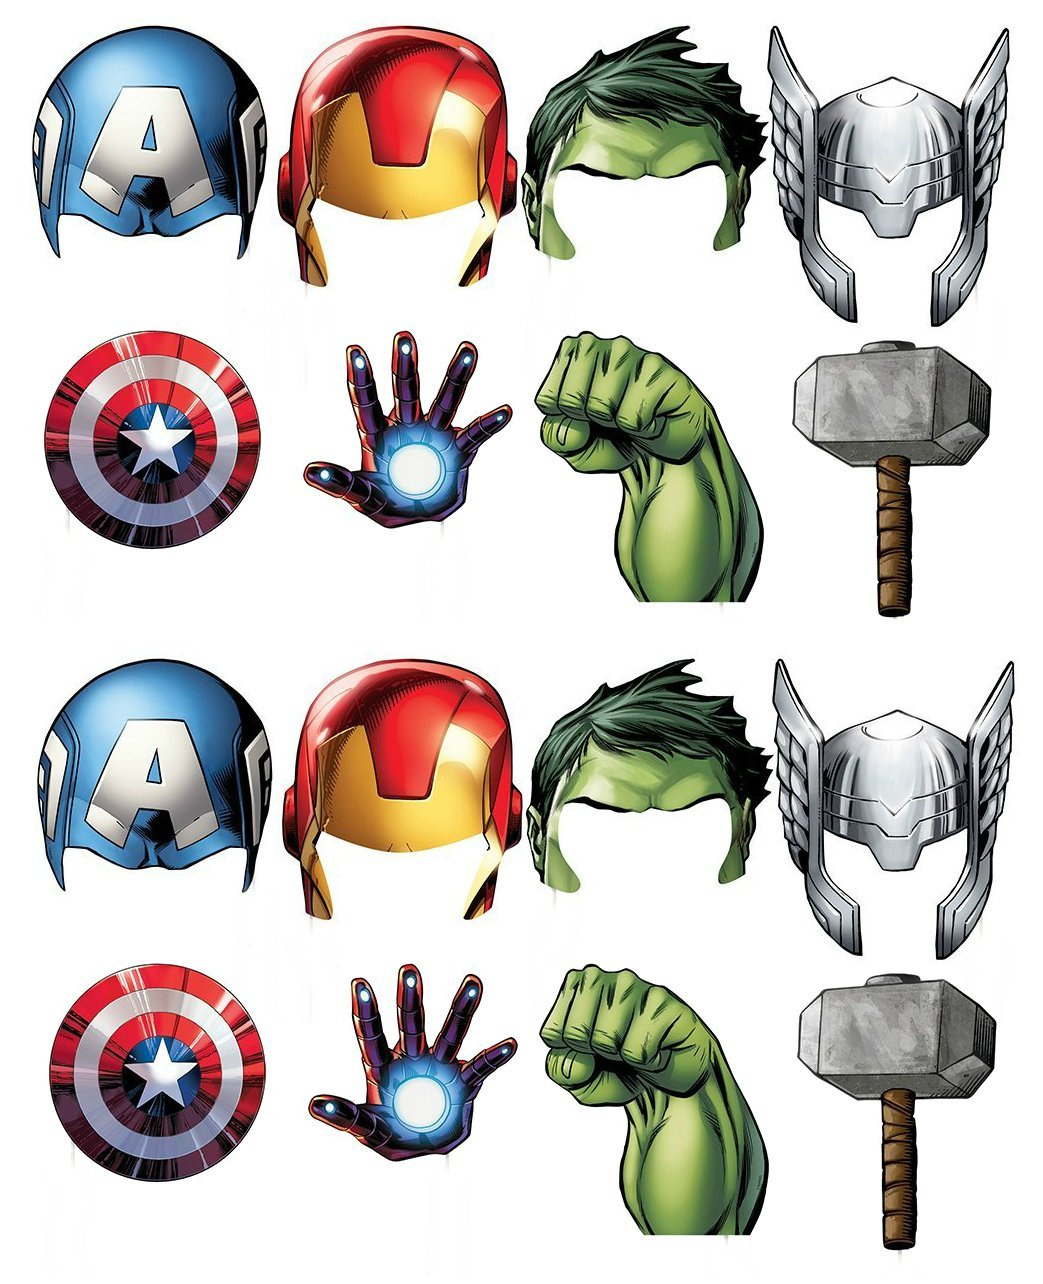 Marvel Avengers Photo Booth Props, 16ct Unique SG_B01MRQL4DG_US